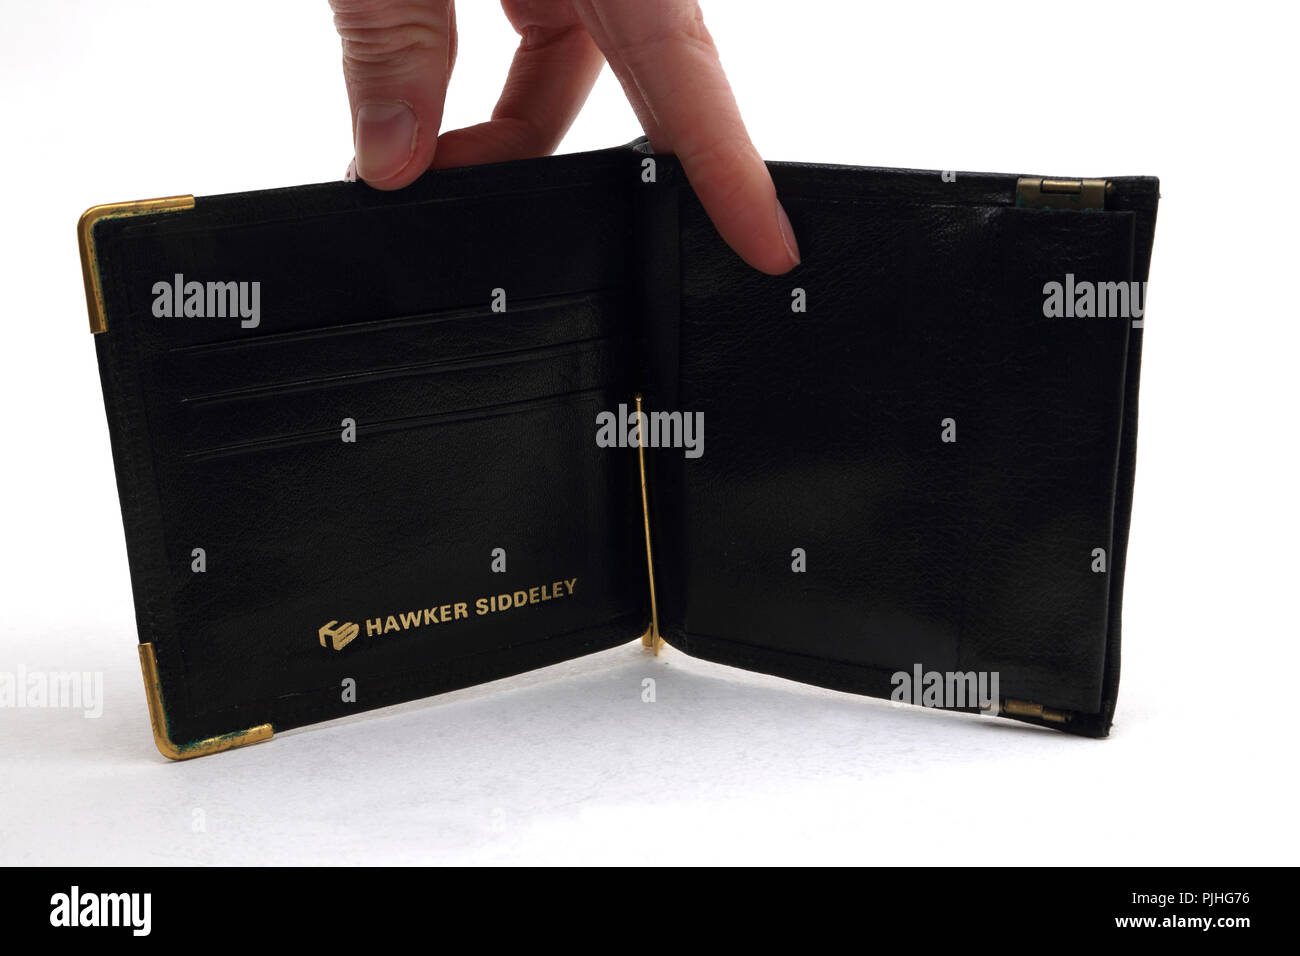 Hawker Siddeley Leather Wallet and Money Clip - Stock Image